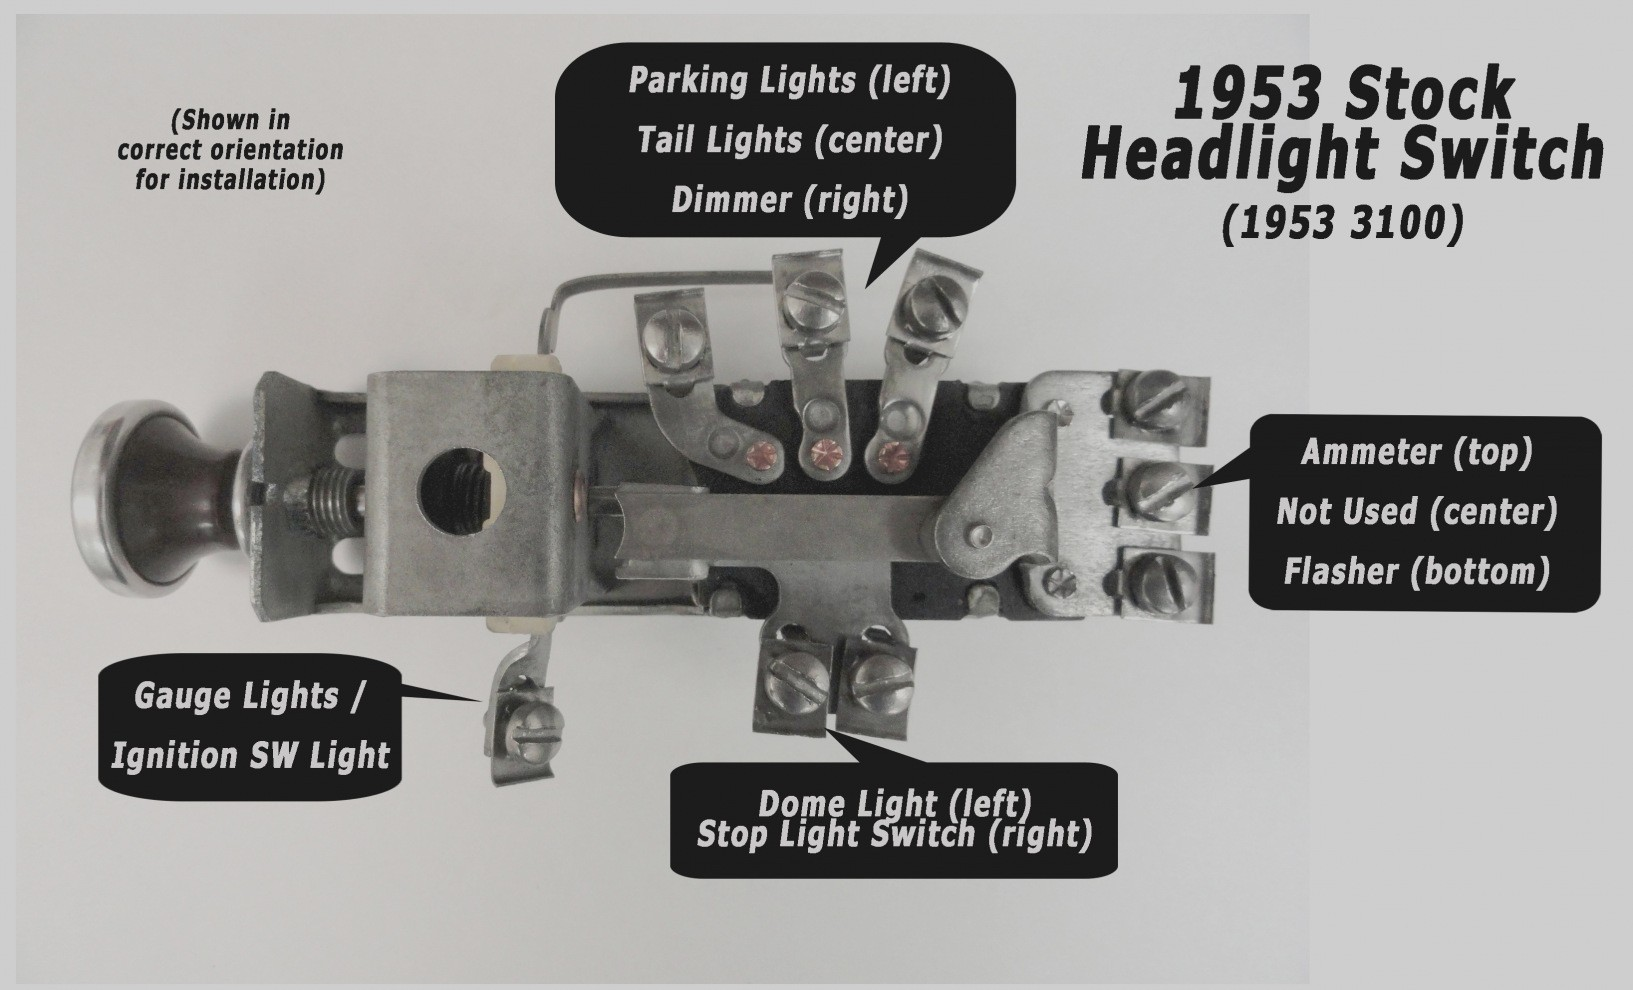 Headlight Switch Wiring Diagram Chevy Truck - Database